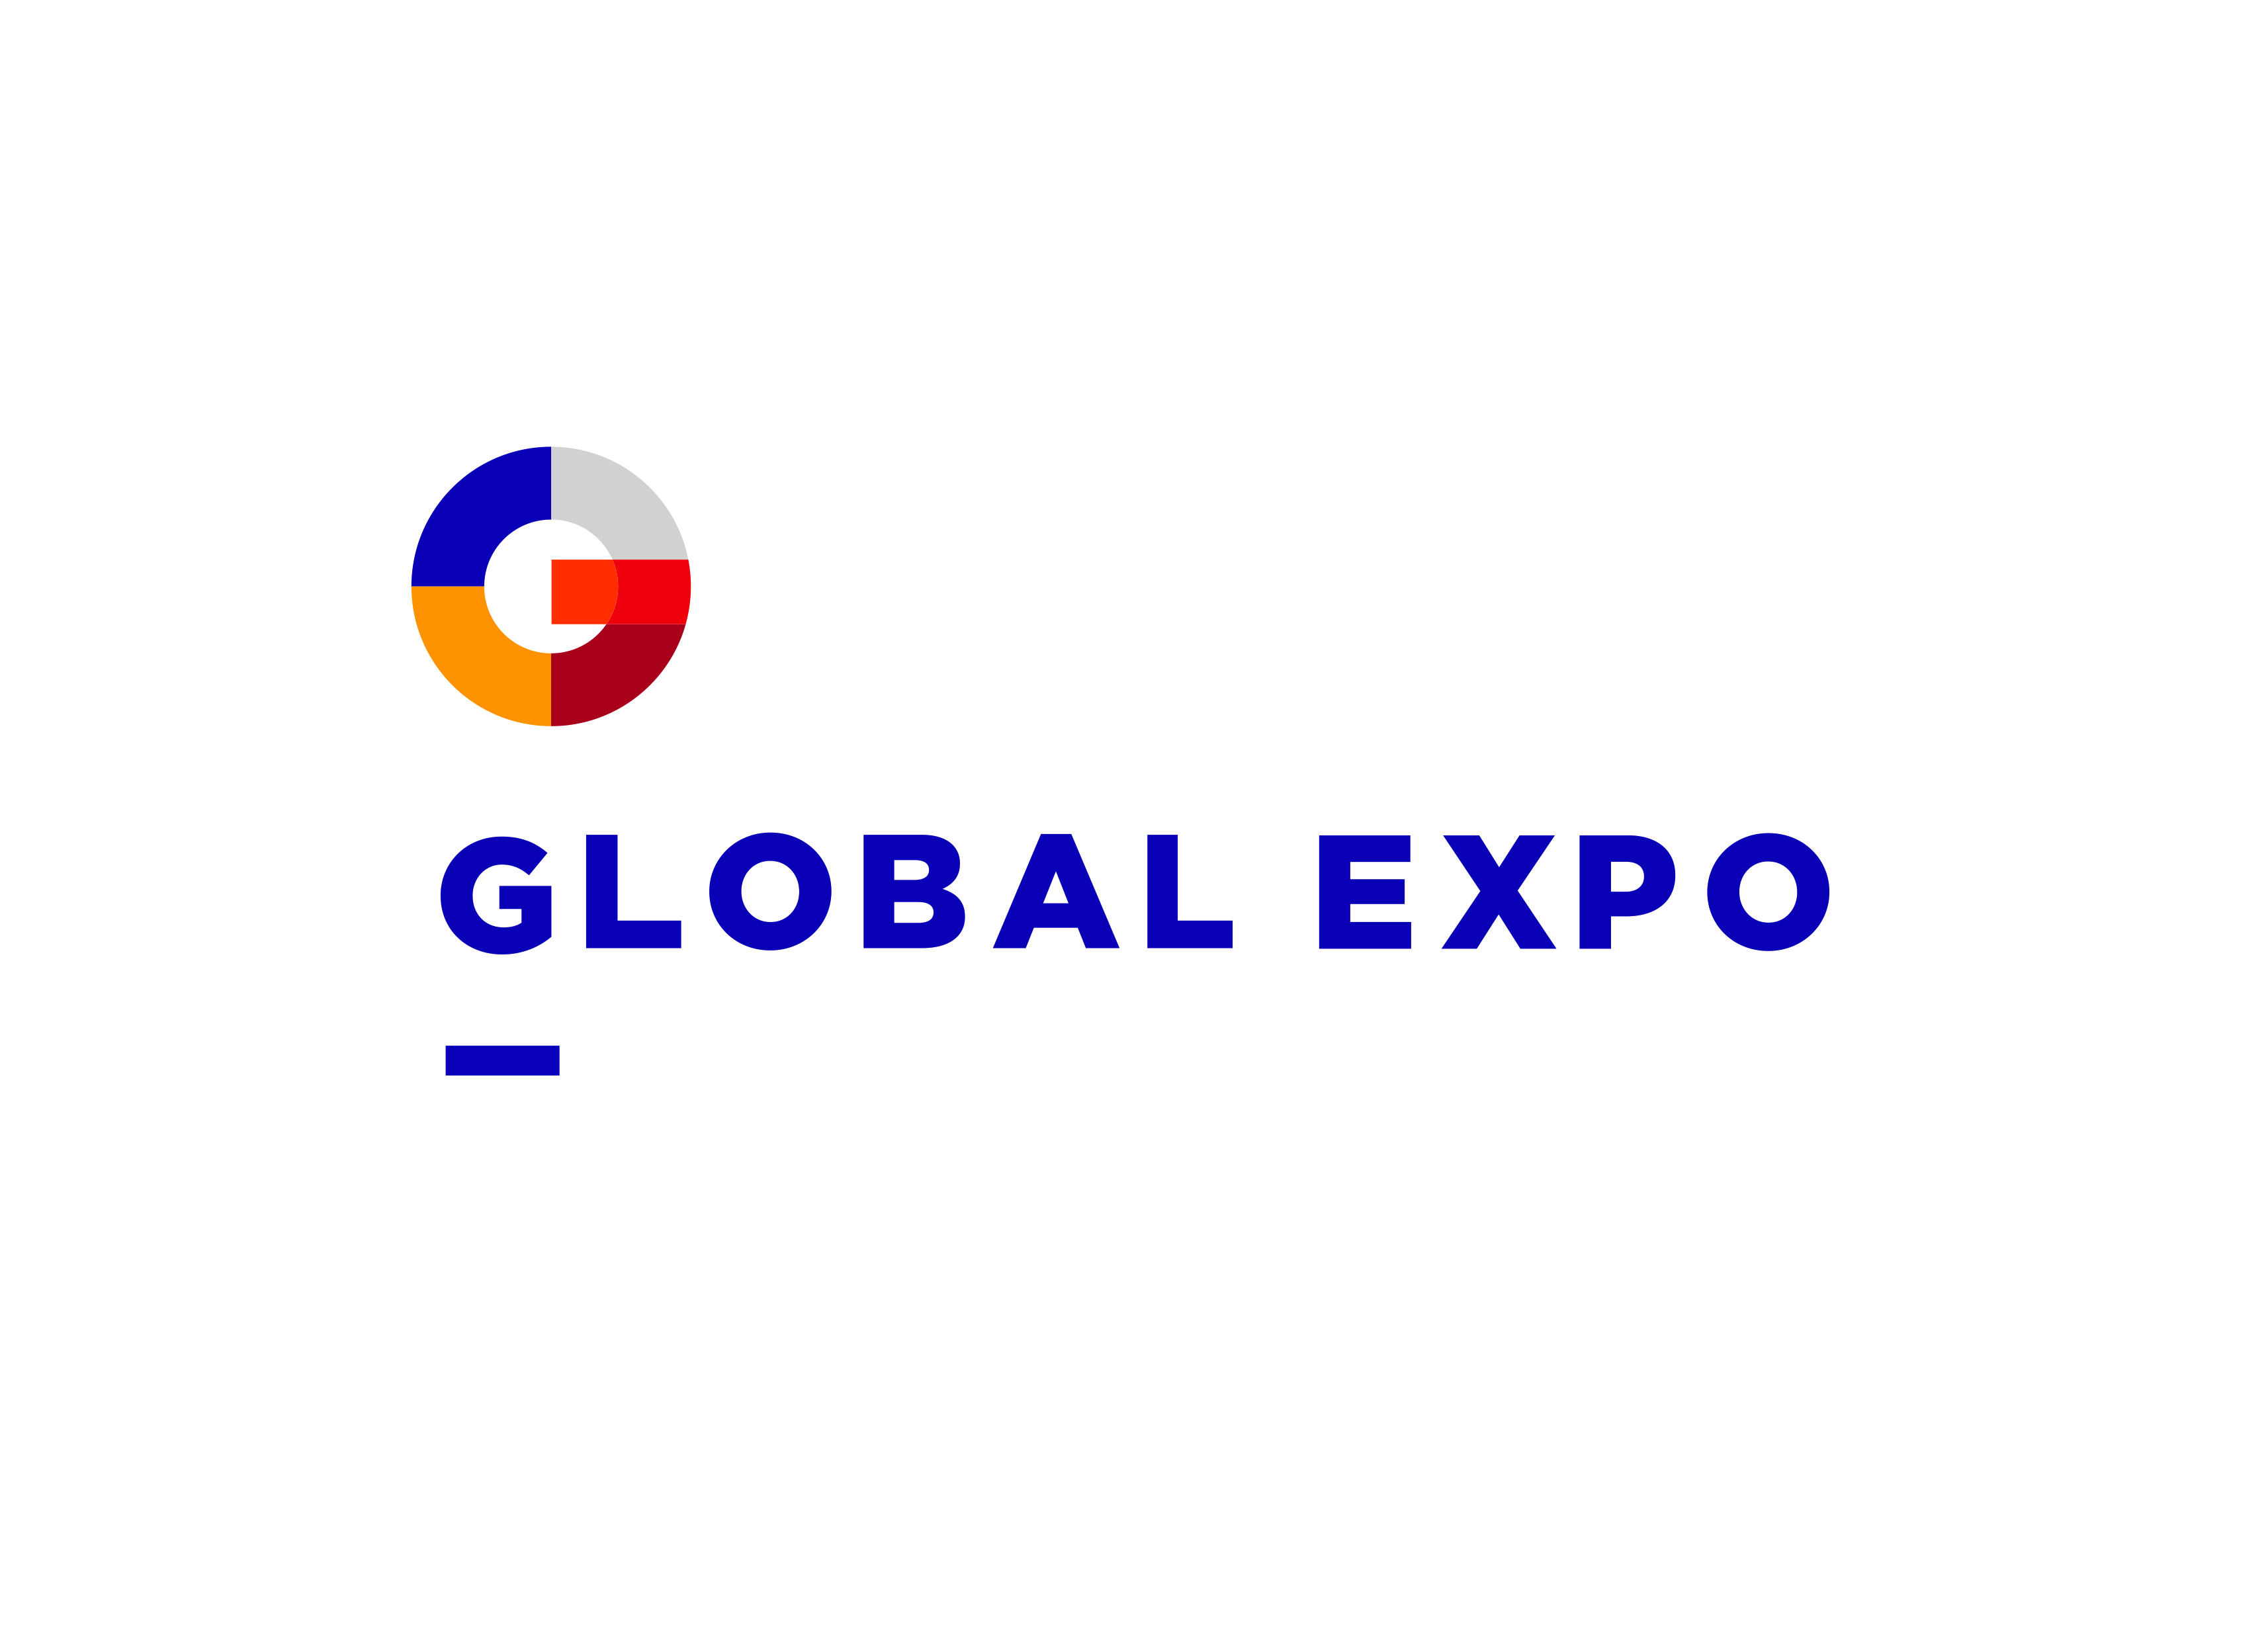 Global Expo logo